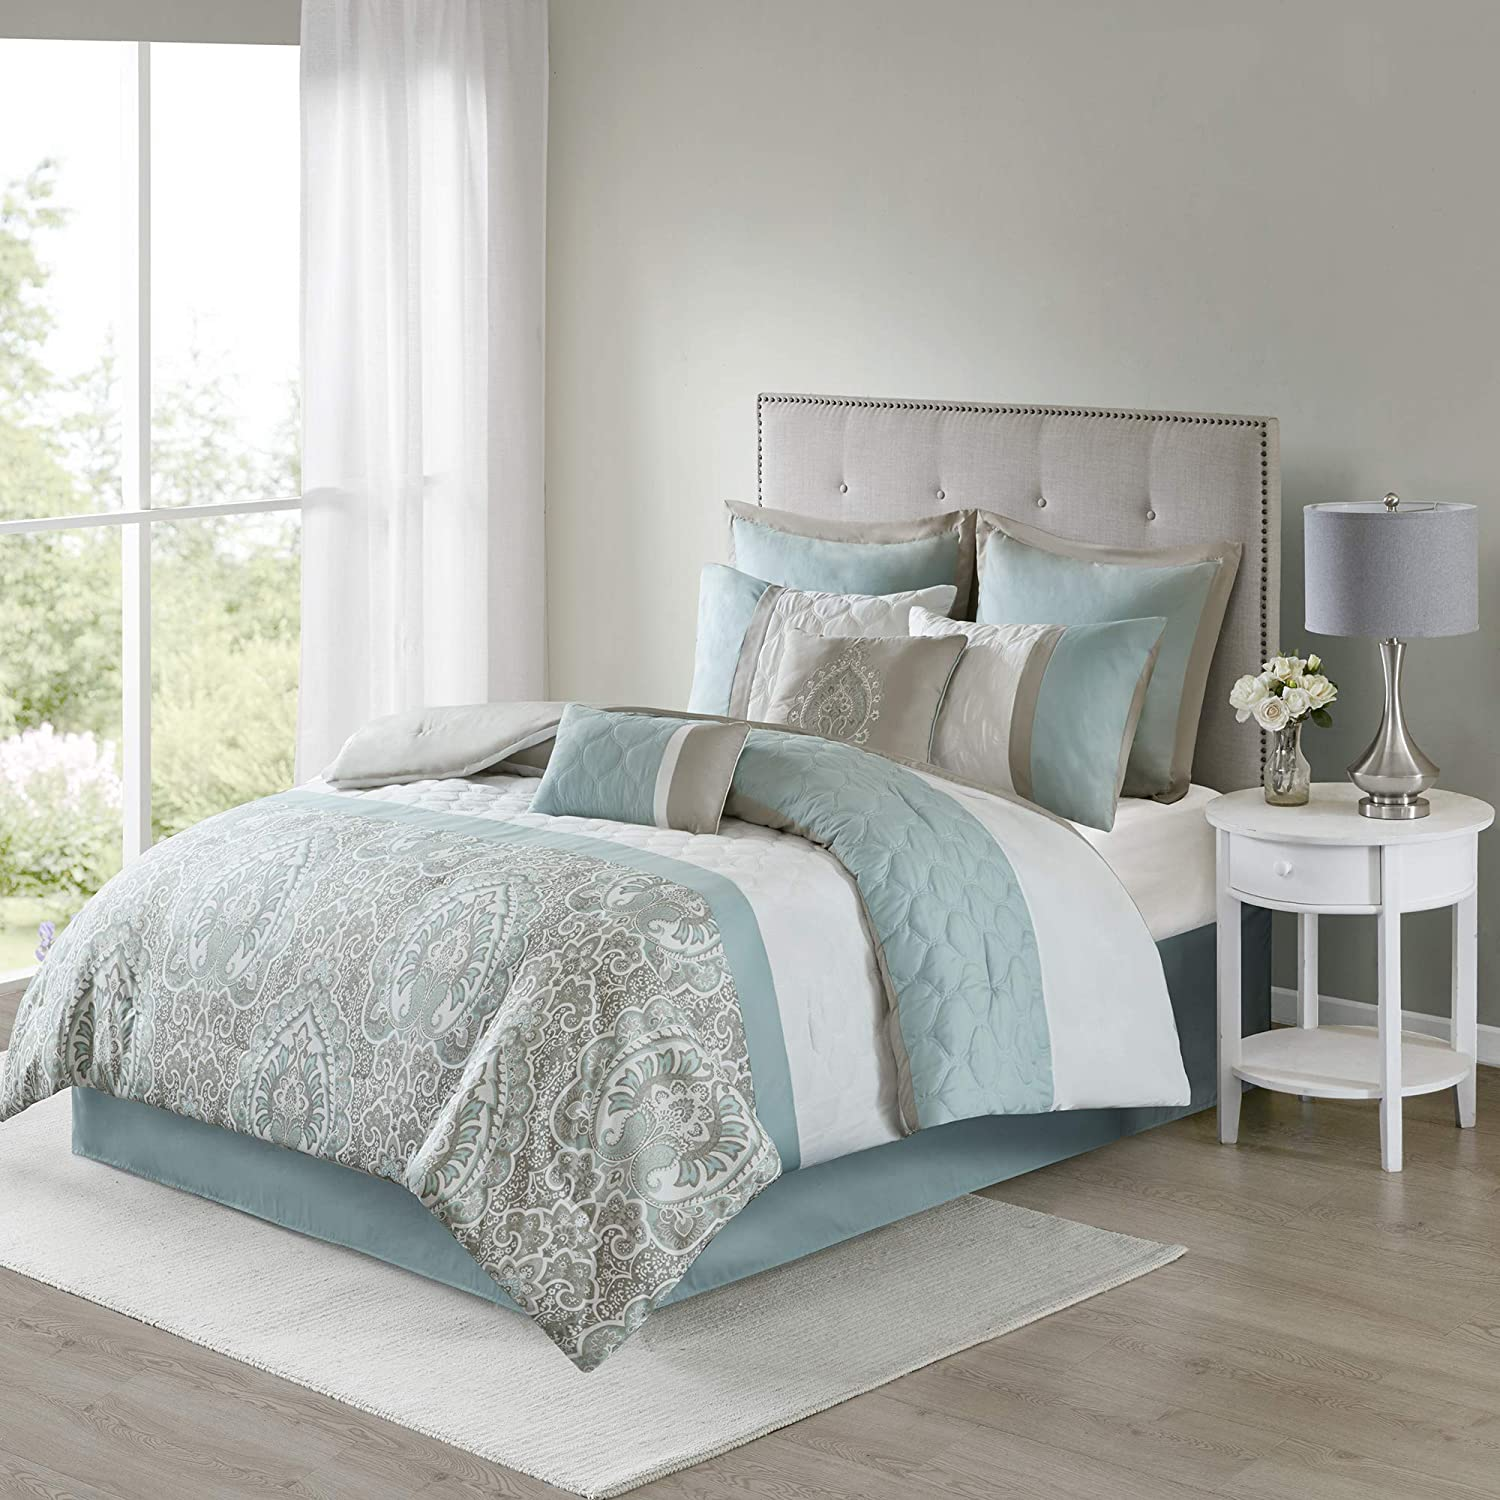 510 DESIGN Shawnee Comforter Reversible Solid Floral Flower Damask Print Pieced Quilted Stripes Embroidered Ultra Soft Down Alternative Hypoallergenic All Season Bedding-Set, Cal King, Seafoam